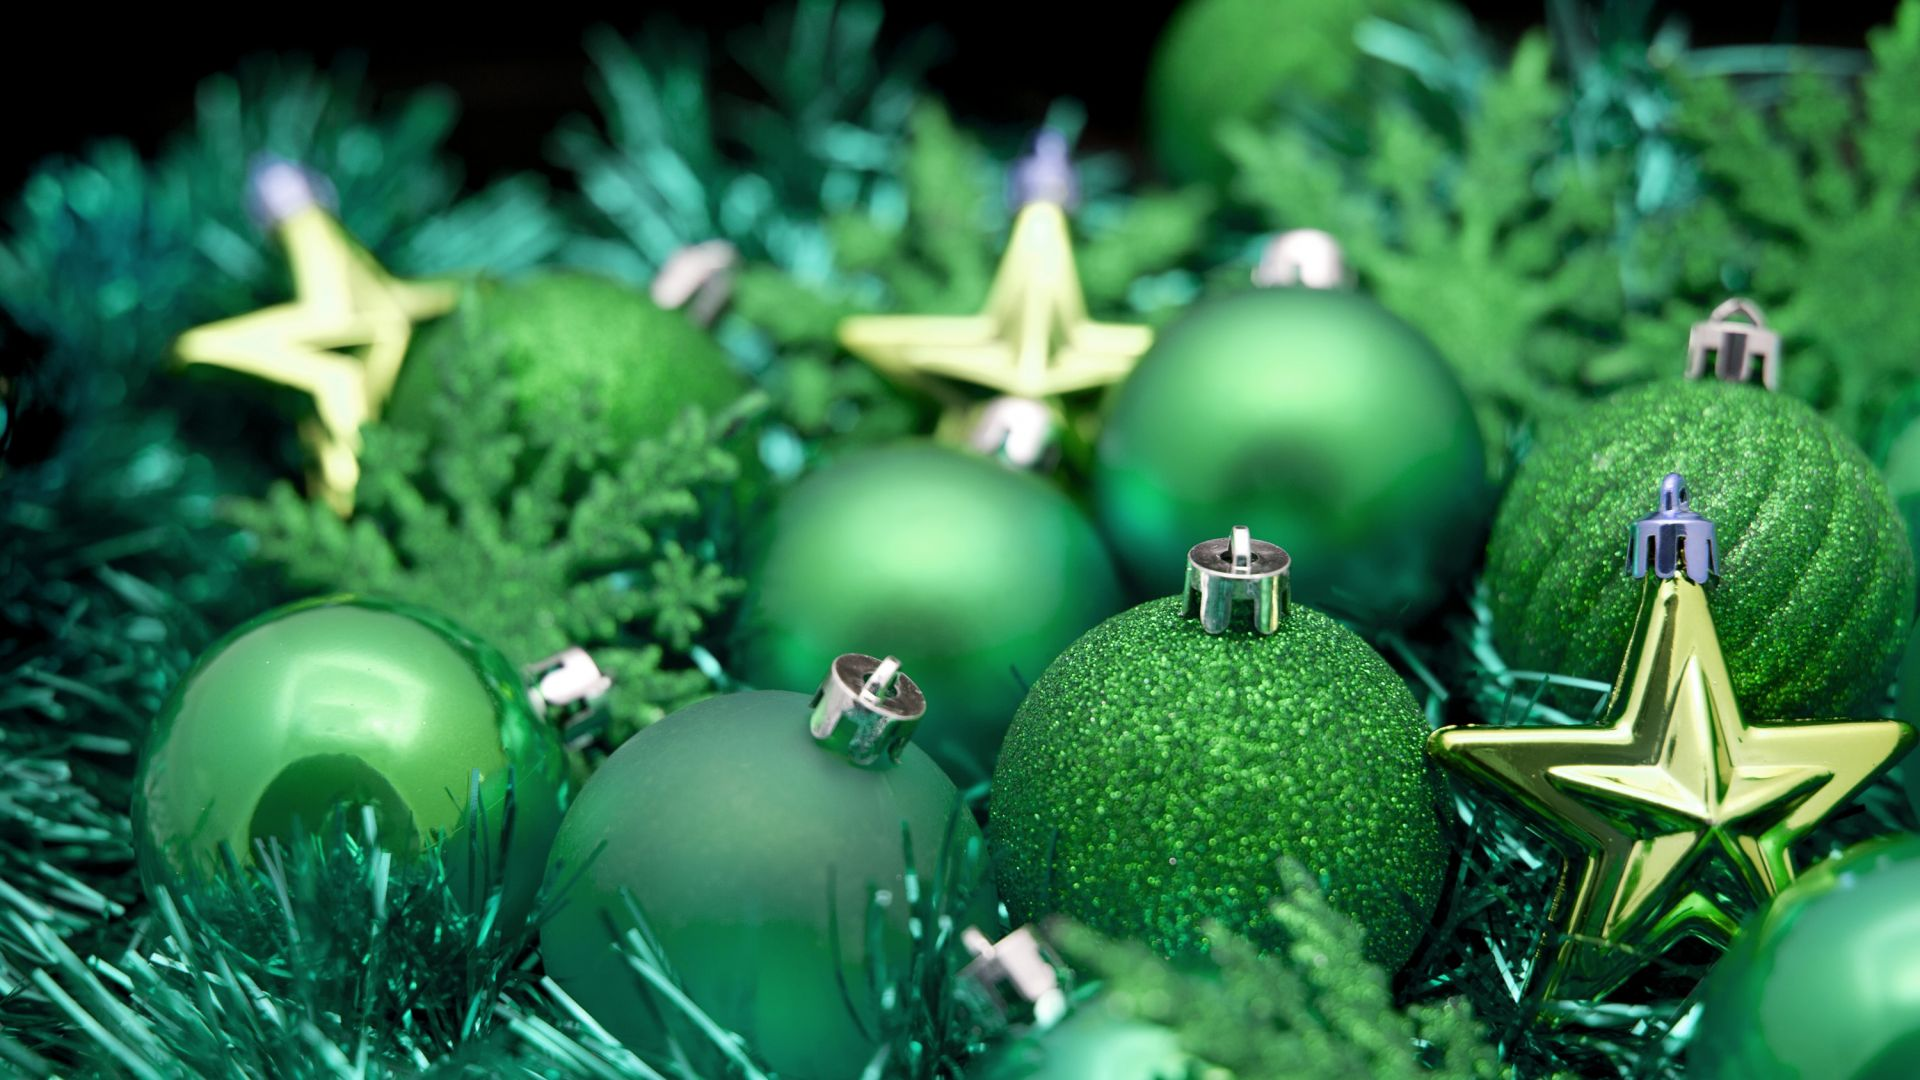 Christmas, New year, balls, decorations, star, green